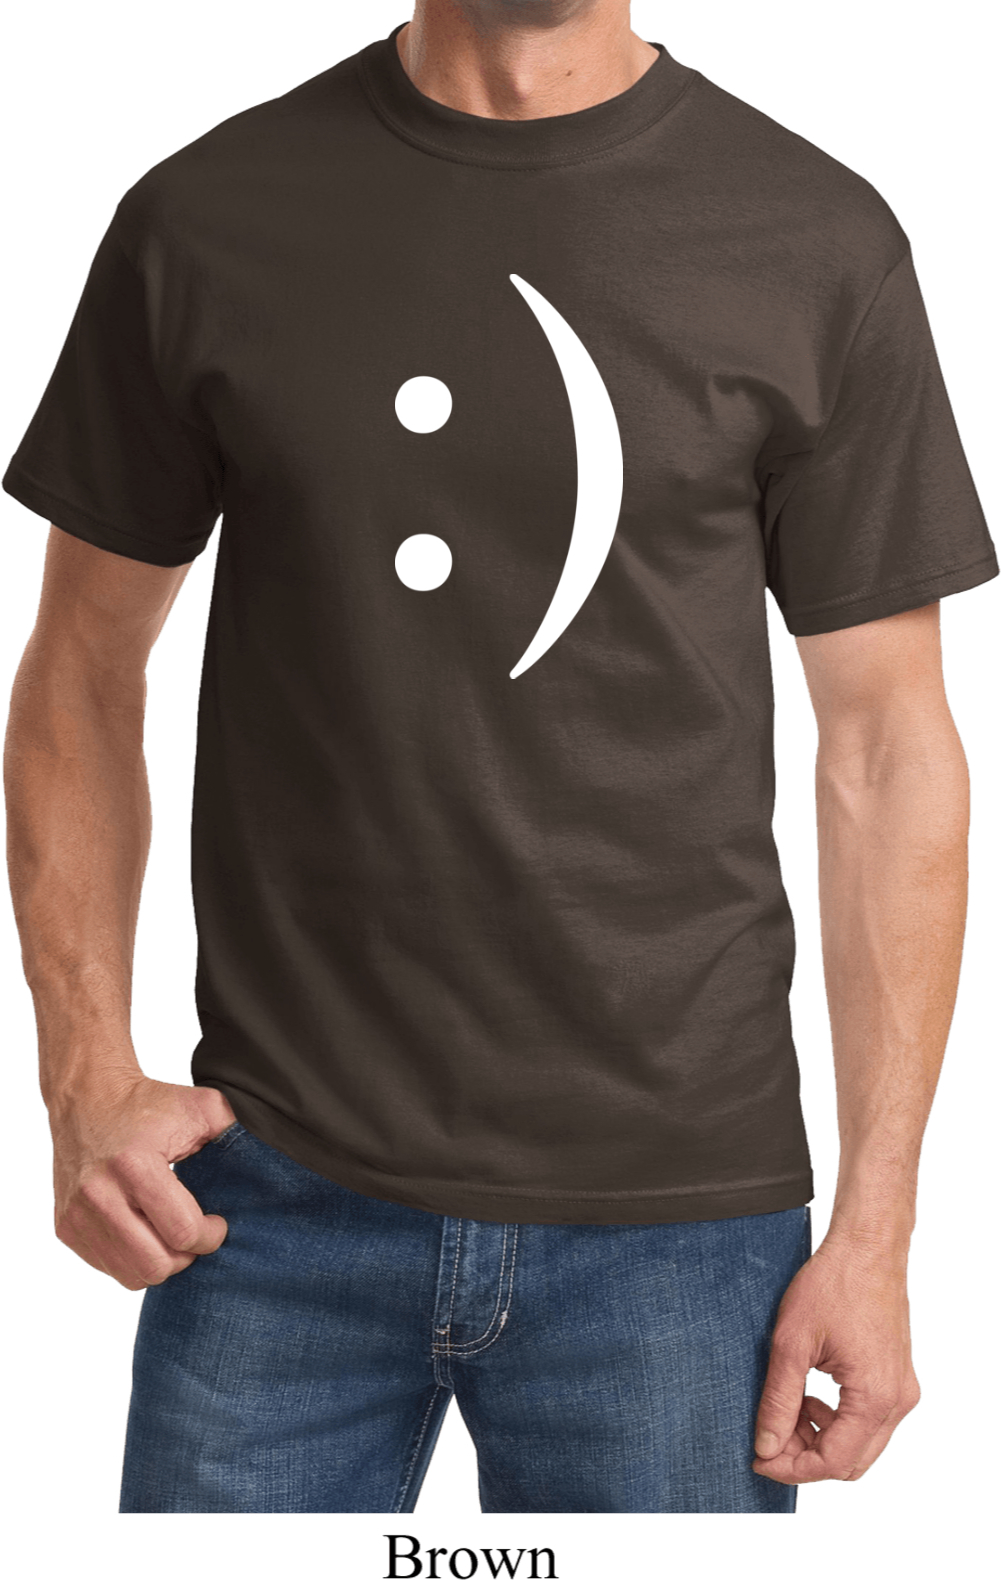 mens funny shirt smiley chat face tee t shirt smiley. Black Bedroom Furniture Sets. Home Design Ideas